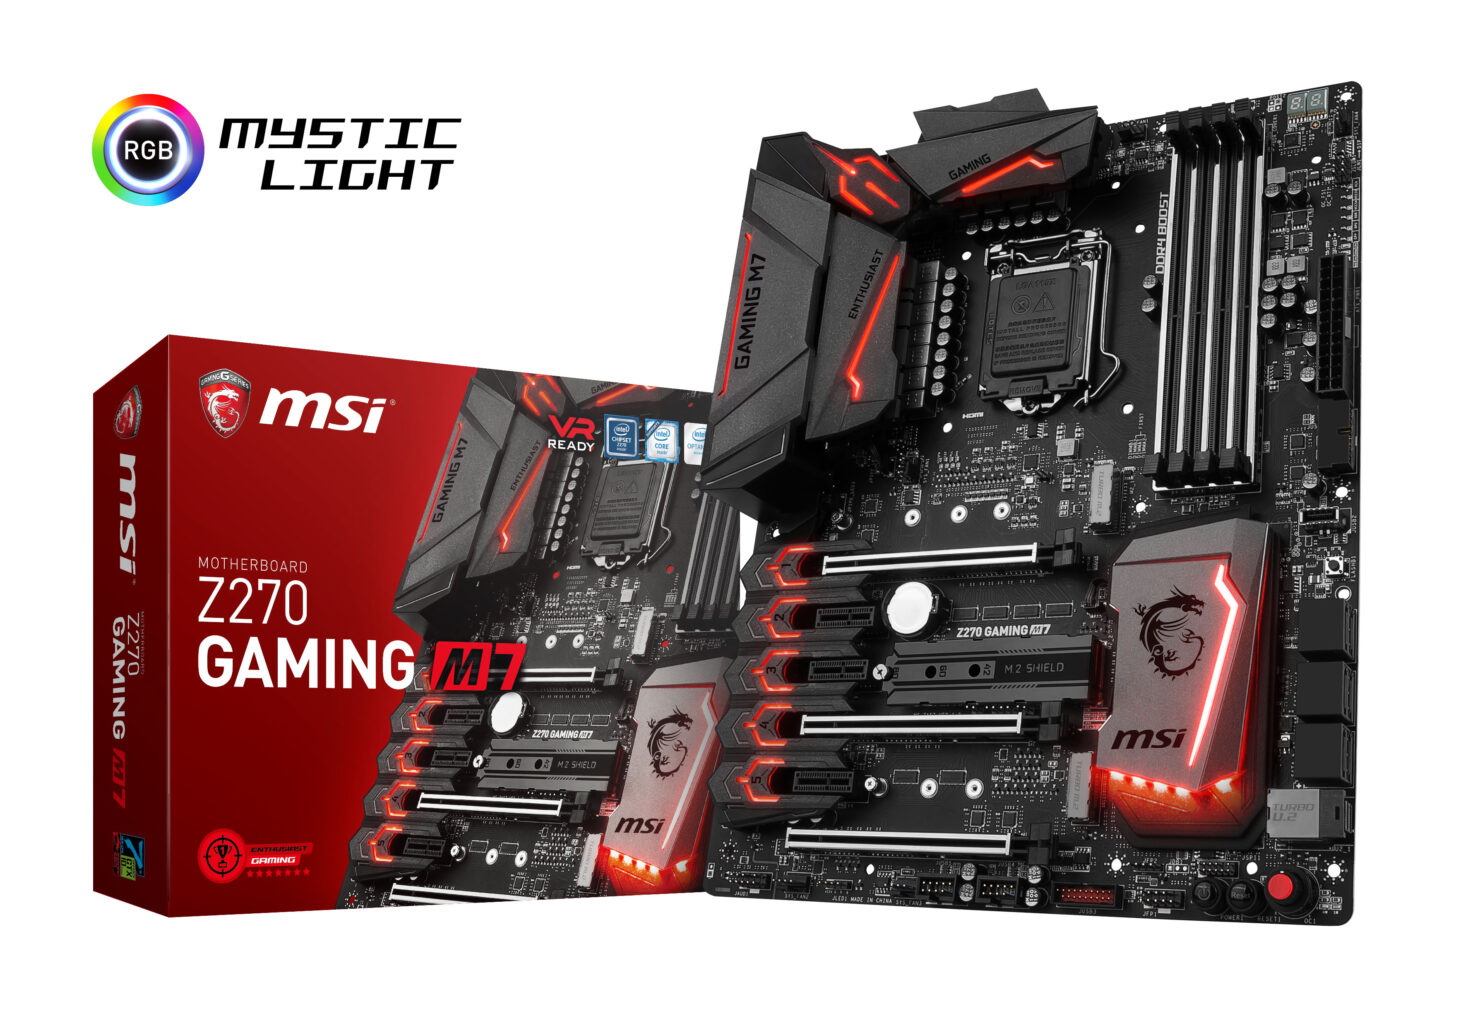 msi-z270_gaming_m7-product_pictures-box